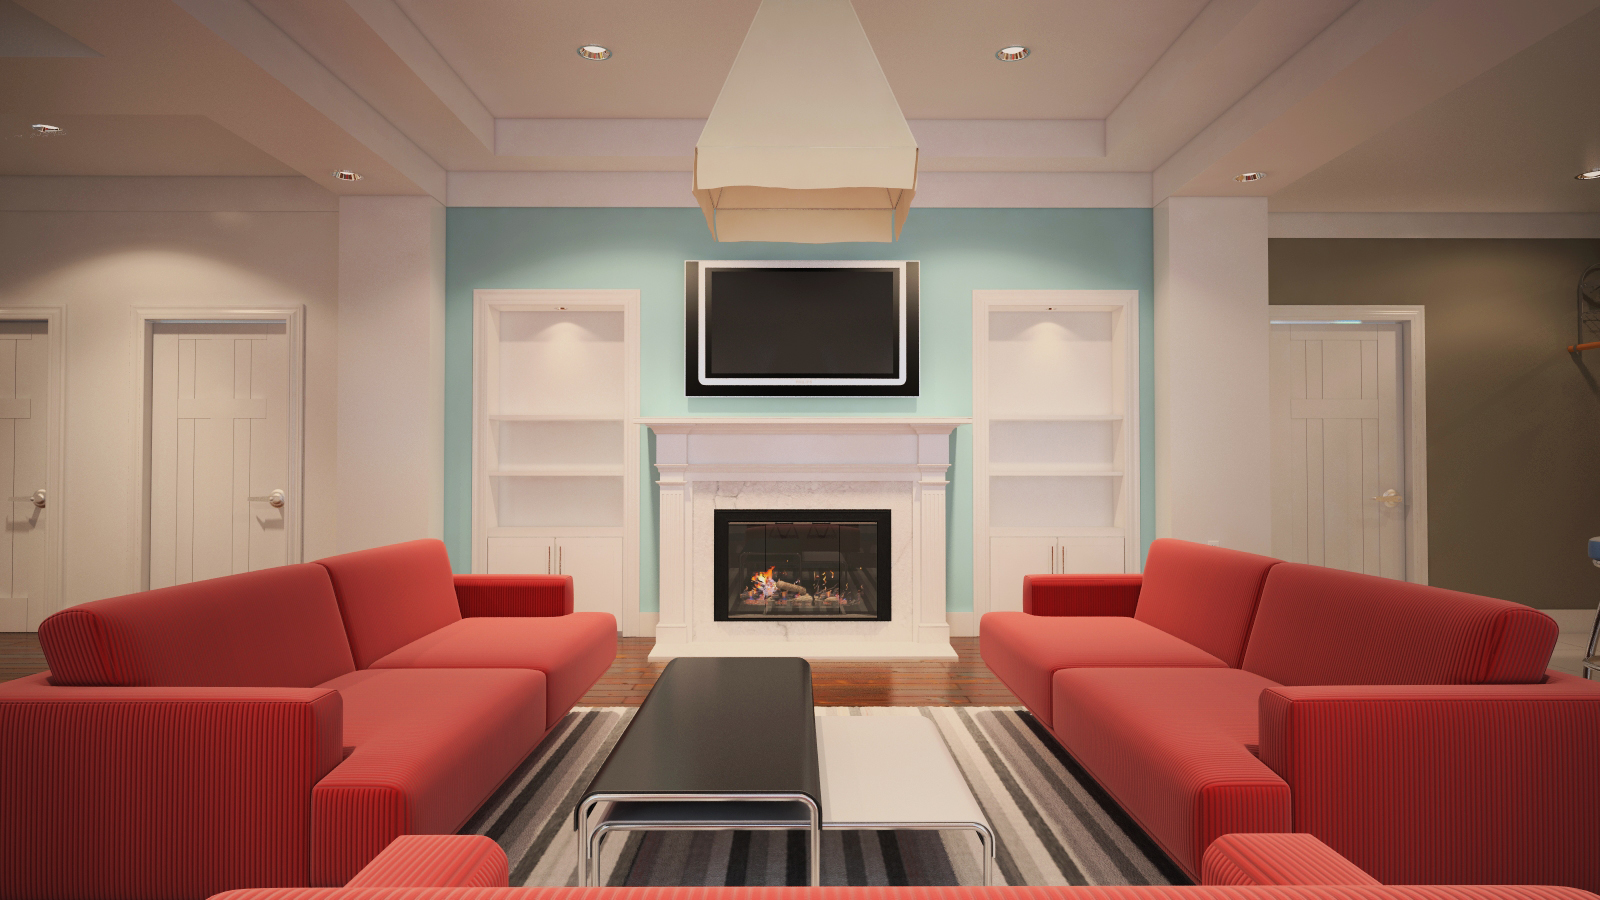 J arch designs updated penthouse interior for Interior arch designs